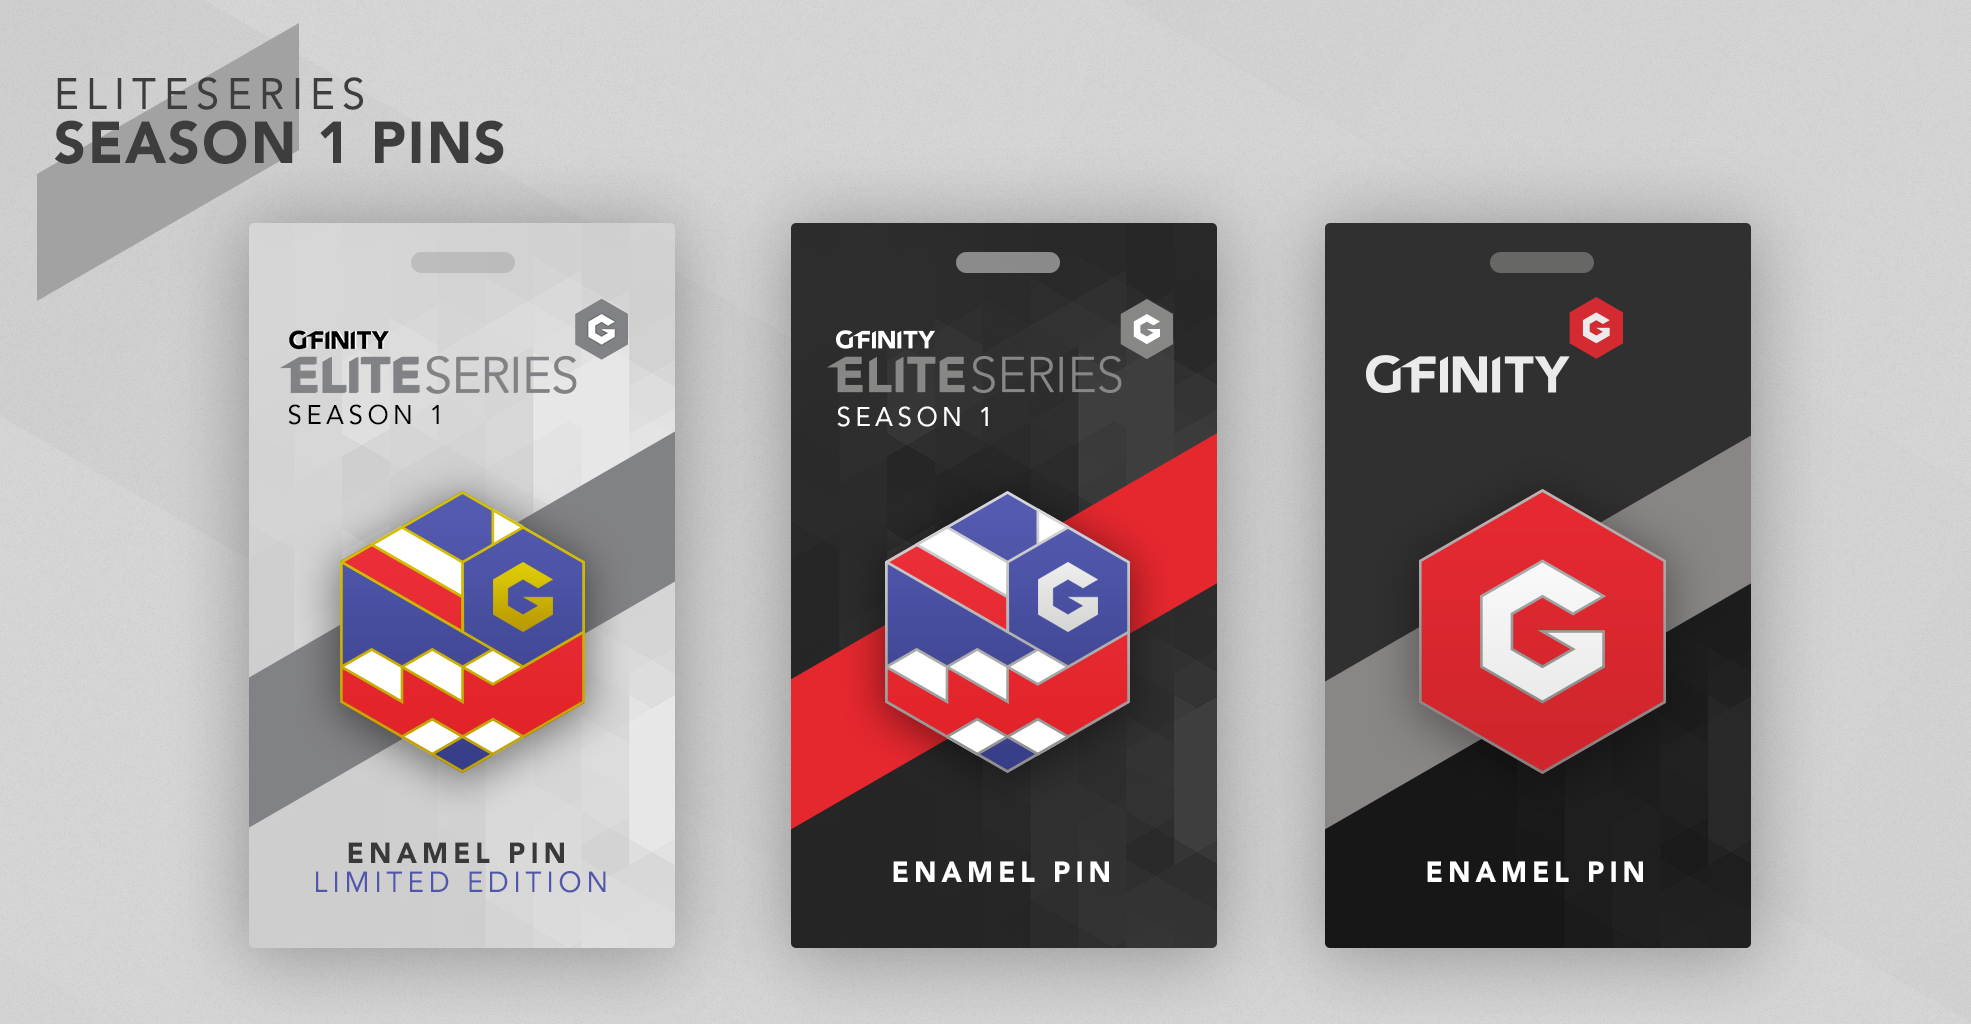 Attend the re-imagined Gfinity Arena to get an exclusive, free pin!